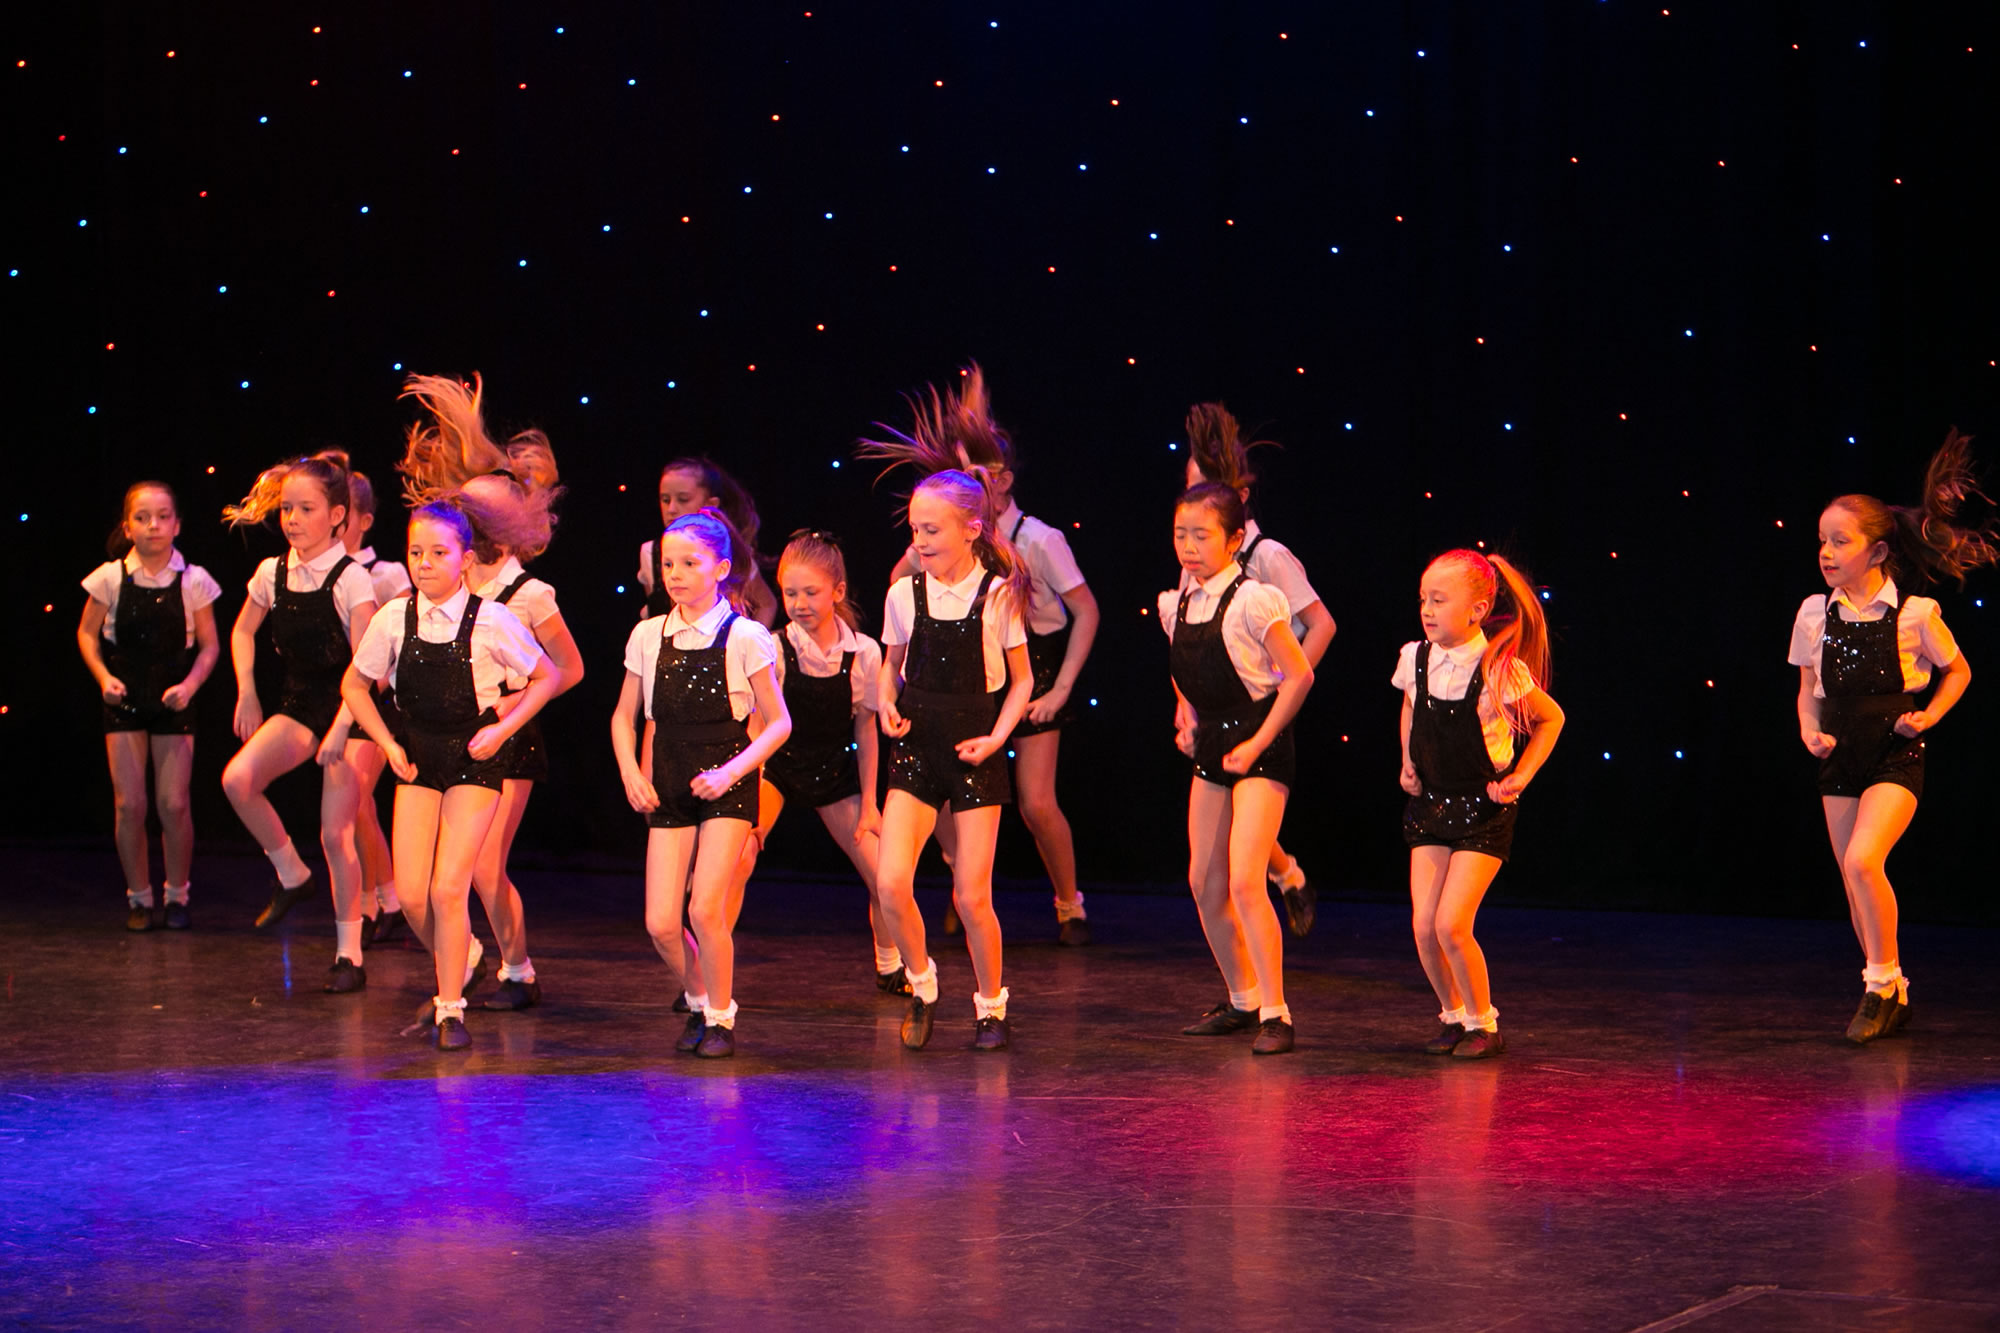 Hitchin_School_of_Dance_Show_2019-SM1_3097.jpg